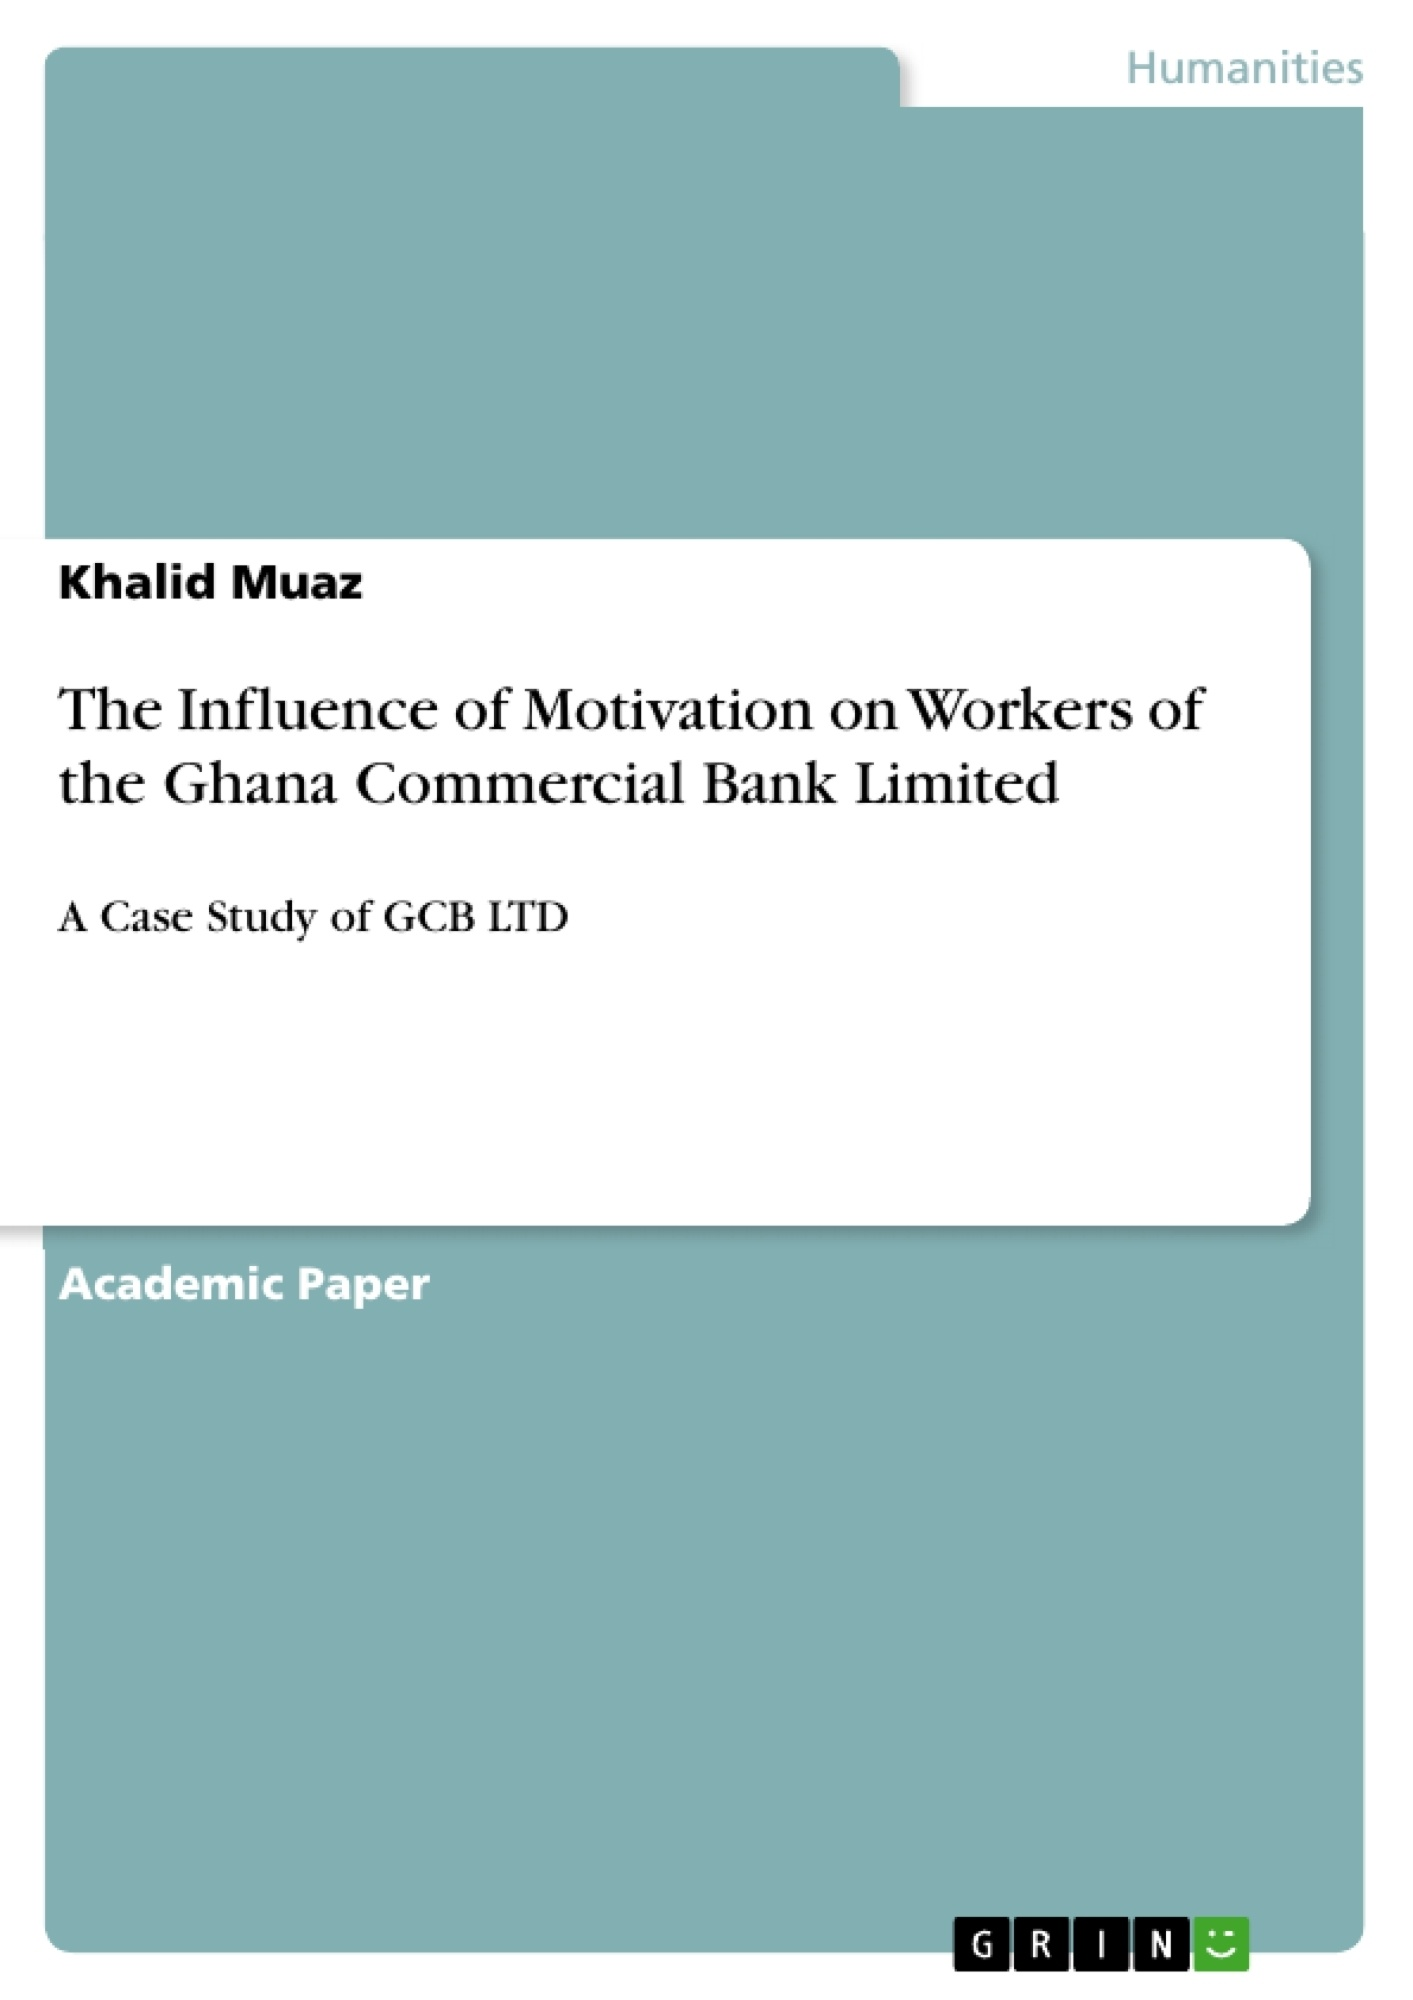 Title: The Influence of Motivation on Workers of the Ghana Commercial Bank Limited